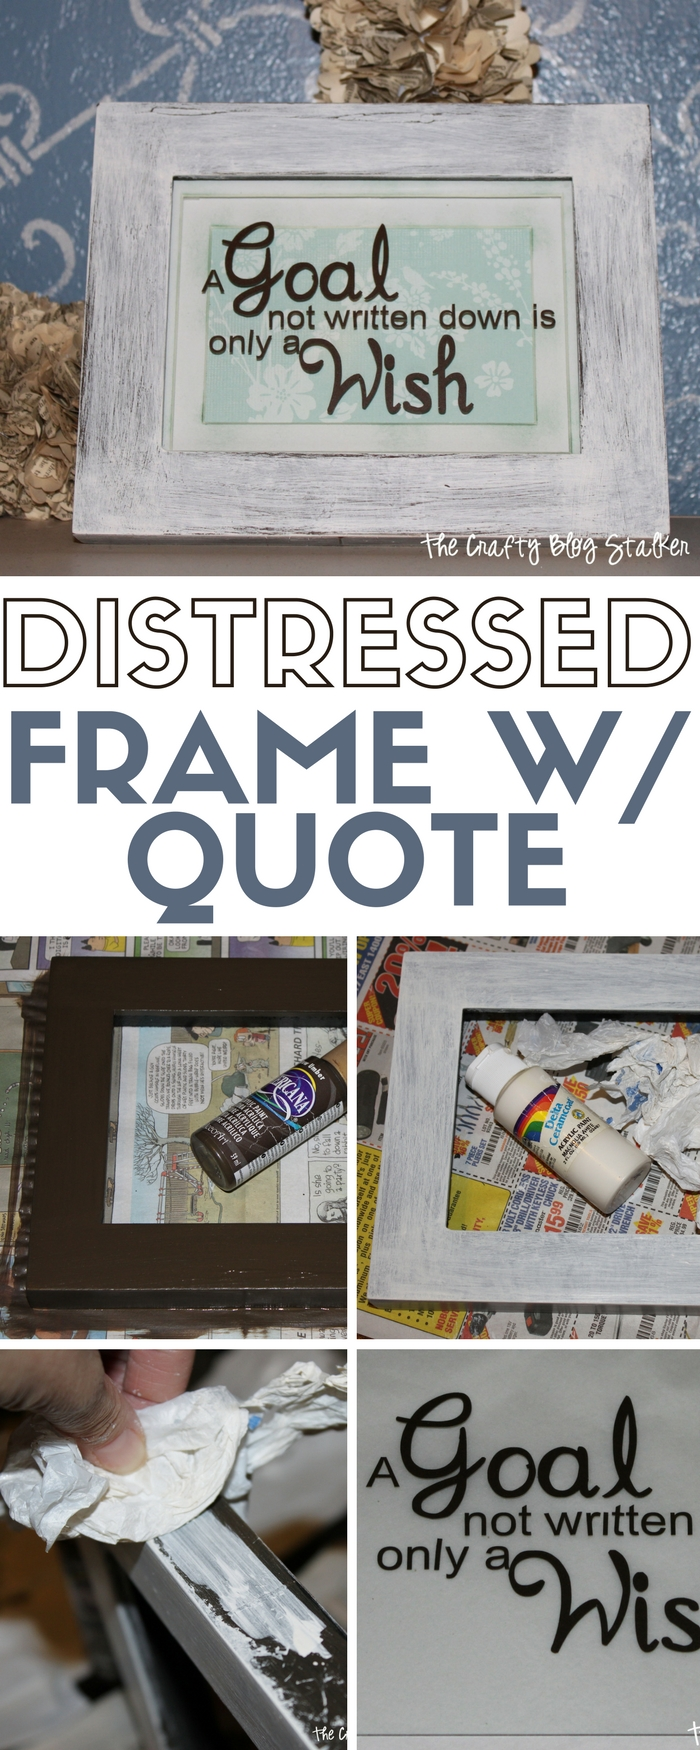 How to make a distressed frame with vinyl quote distress a frame. An easy DIY craft tutorial idea for beautiful personalized home decor.